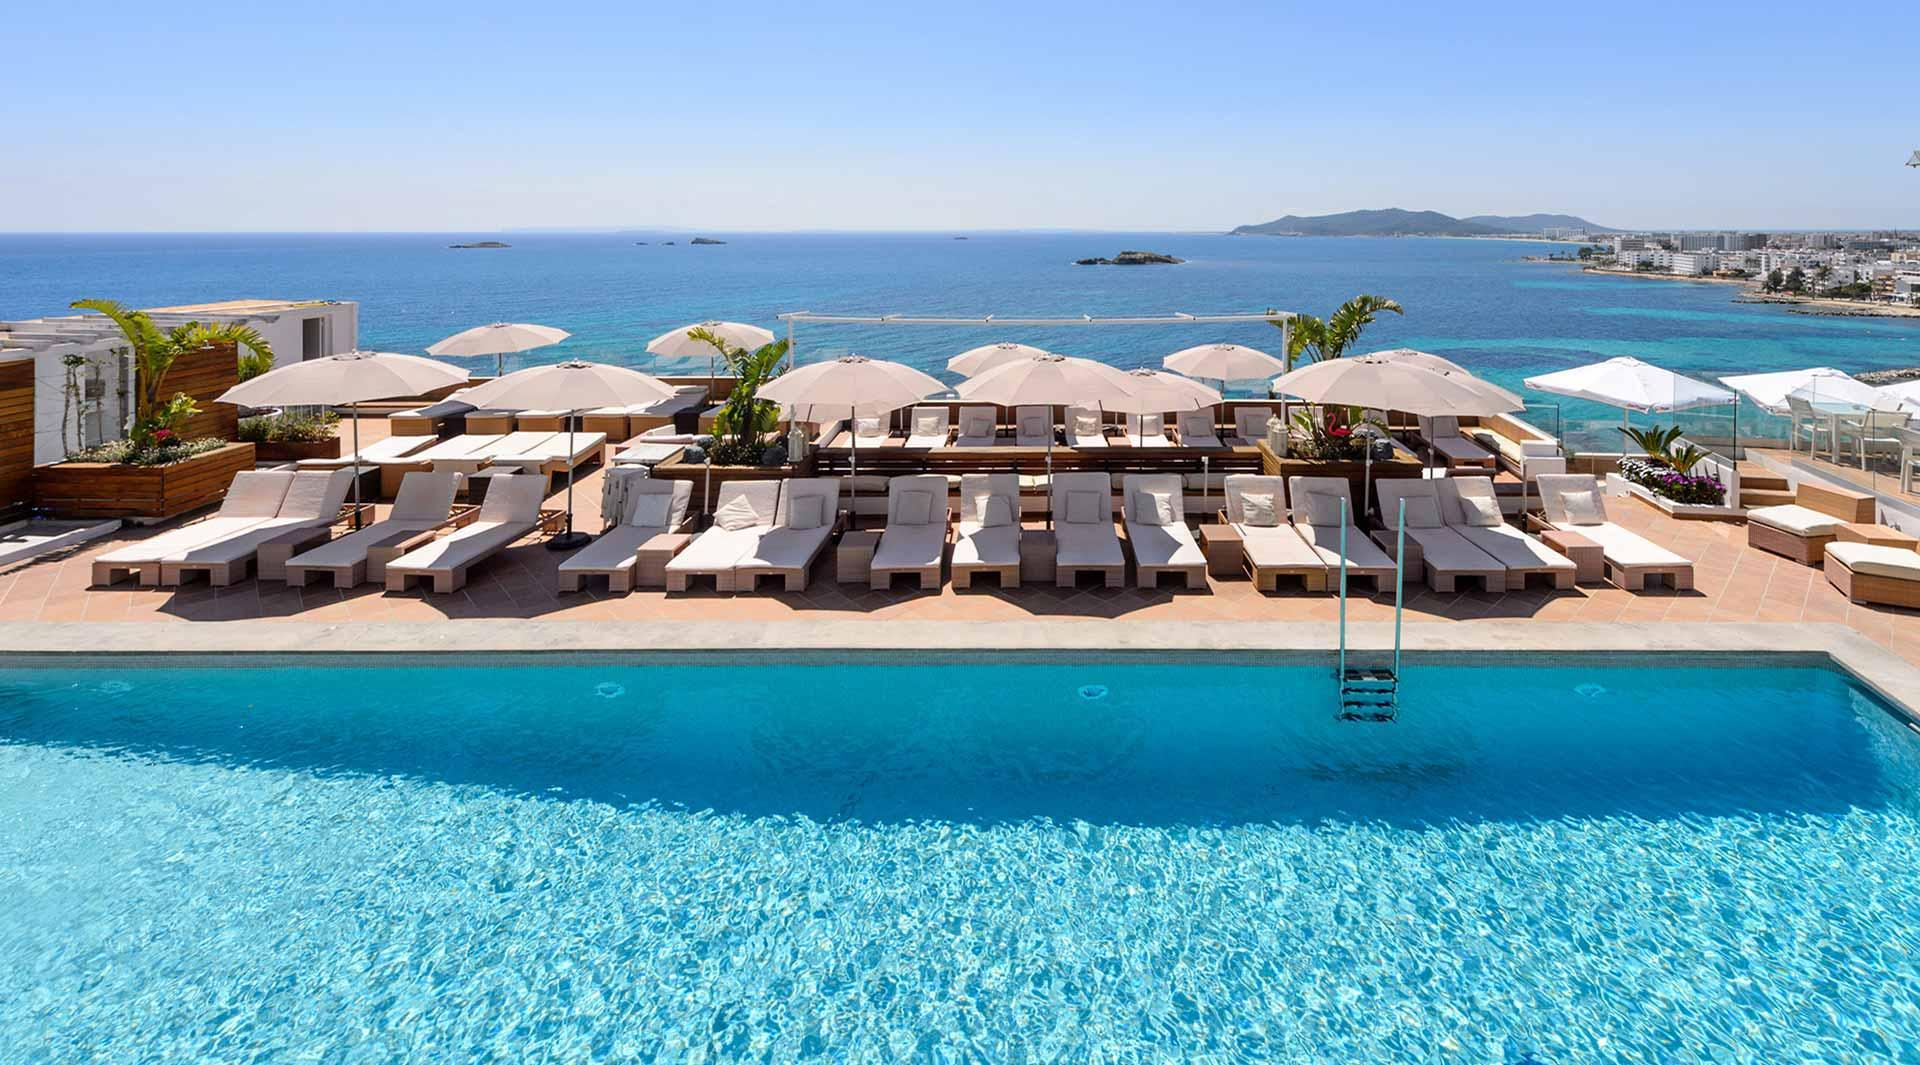 Cenit hotel figueretas ibiza spain book cenit hotel online for Hotels ibiza